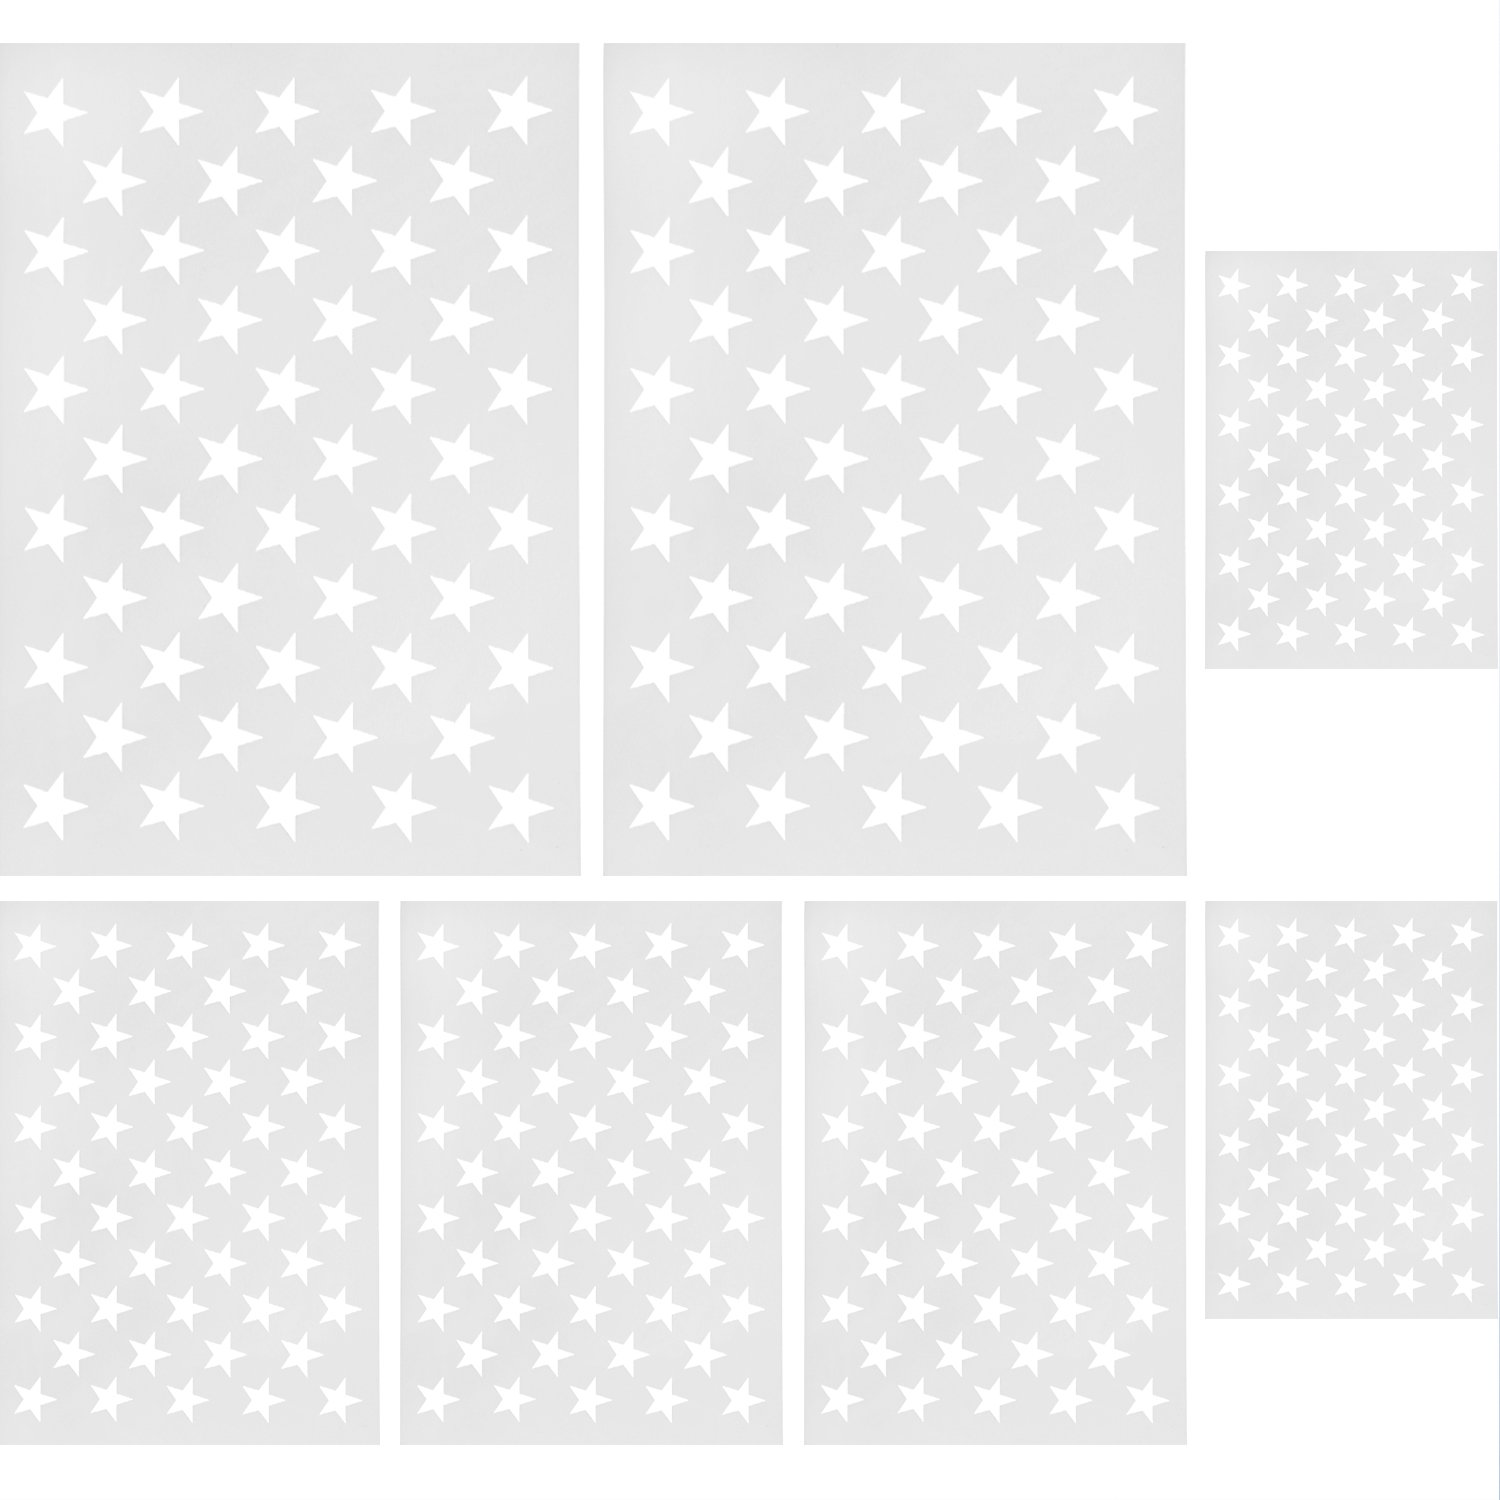 Gejoy 7 Pieces Star Stencil Template 50 Stars American Flag Template for Painting and DIY Making American Flags, 10.5 by 14.82 inch, 7 by 10 inch, 5 by 7 inch